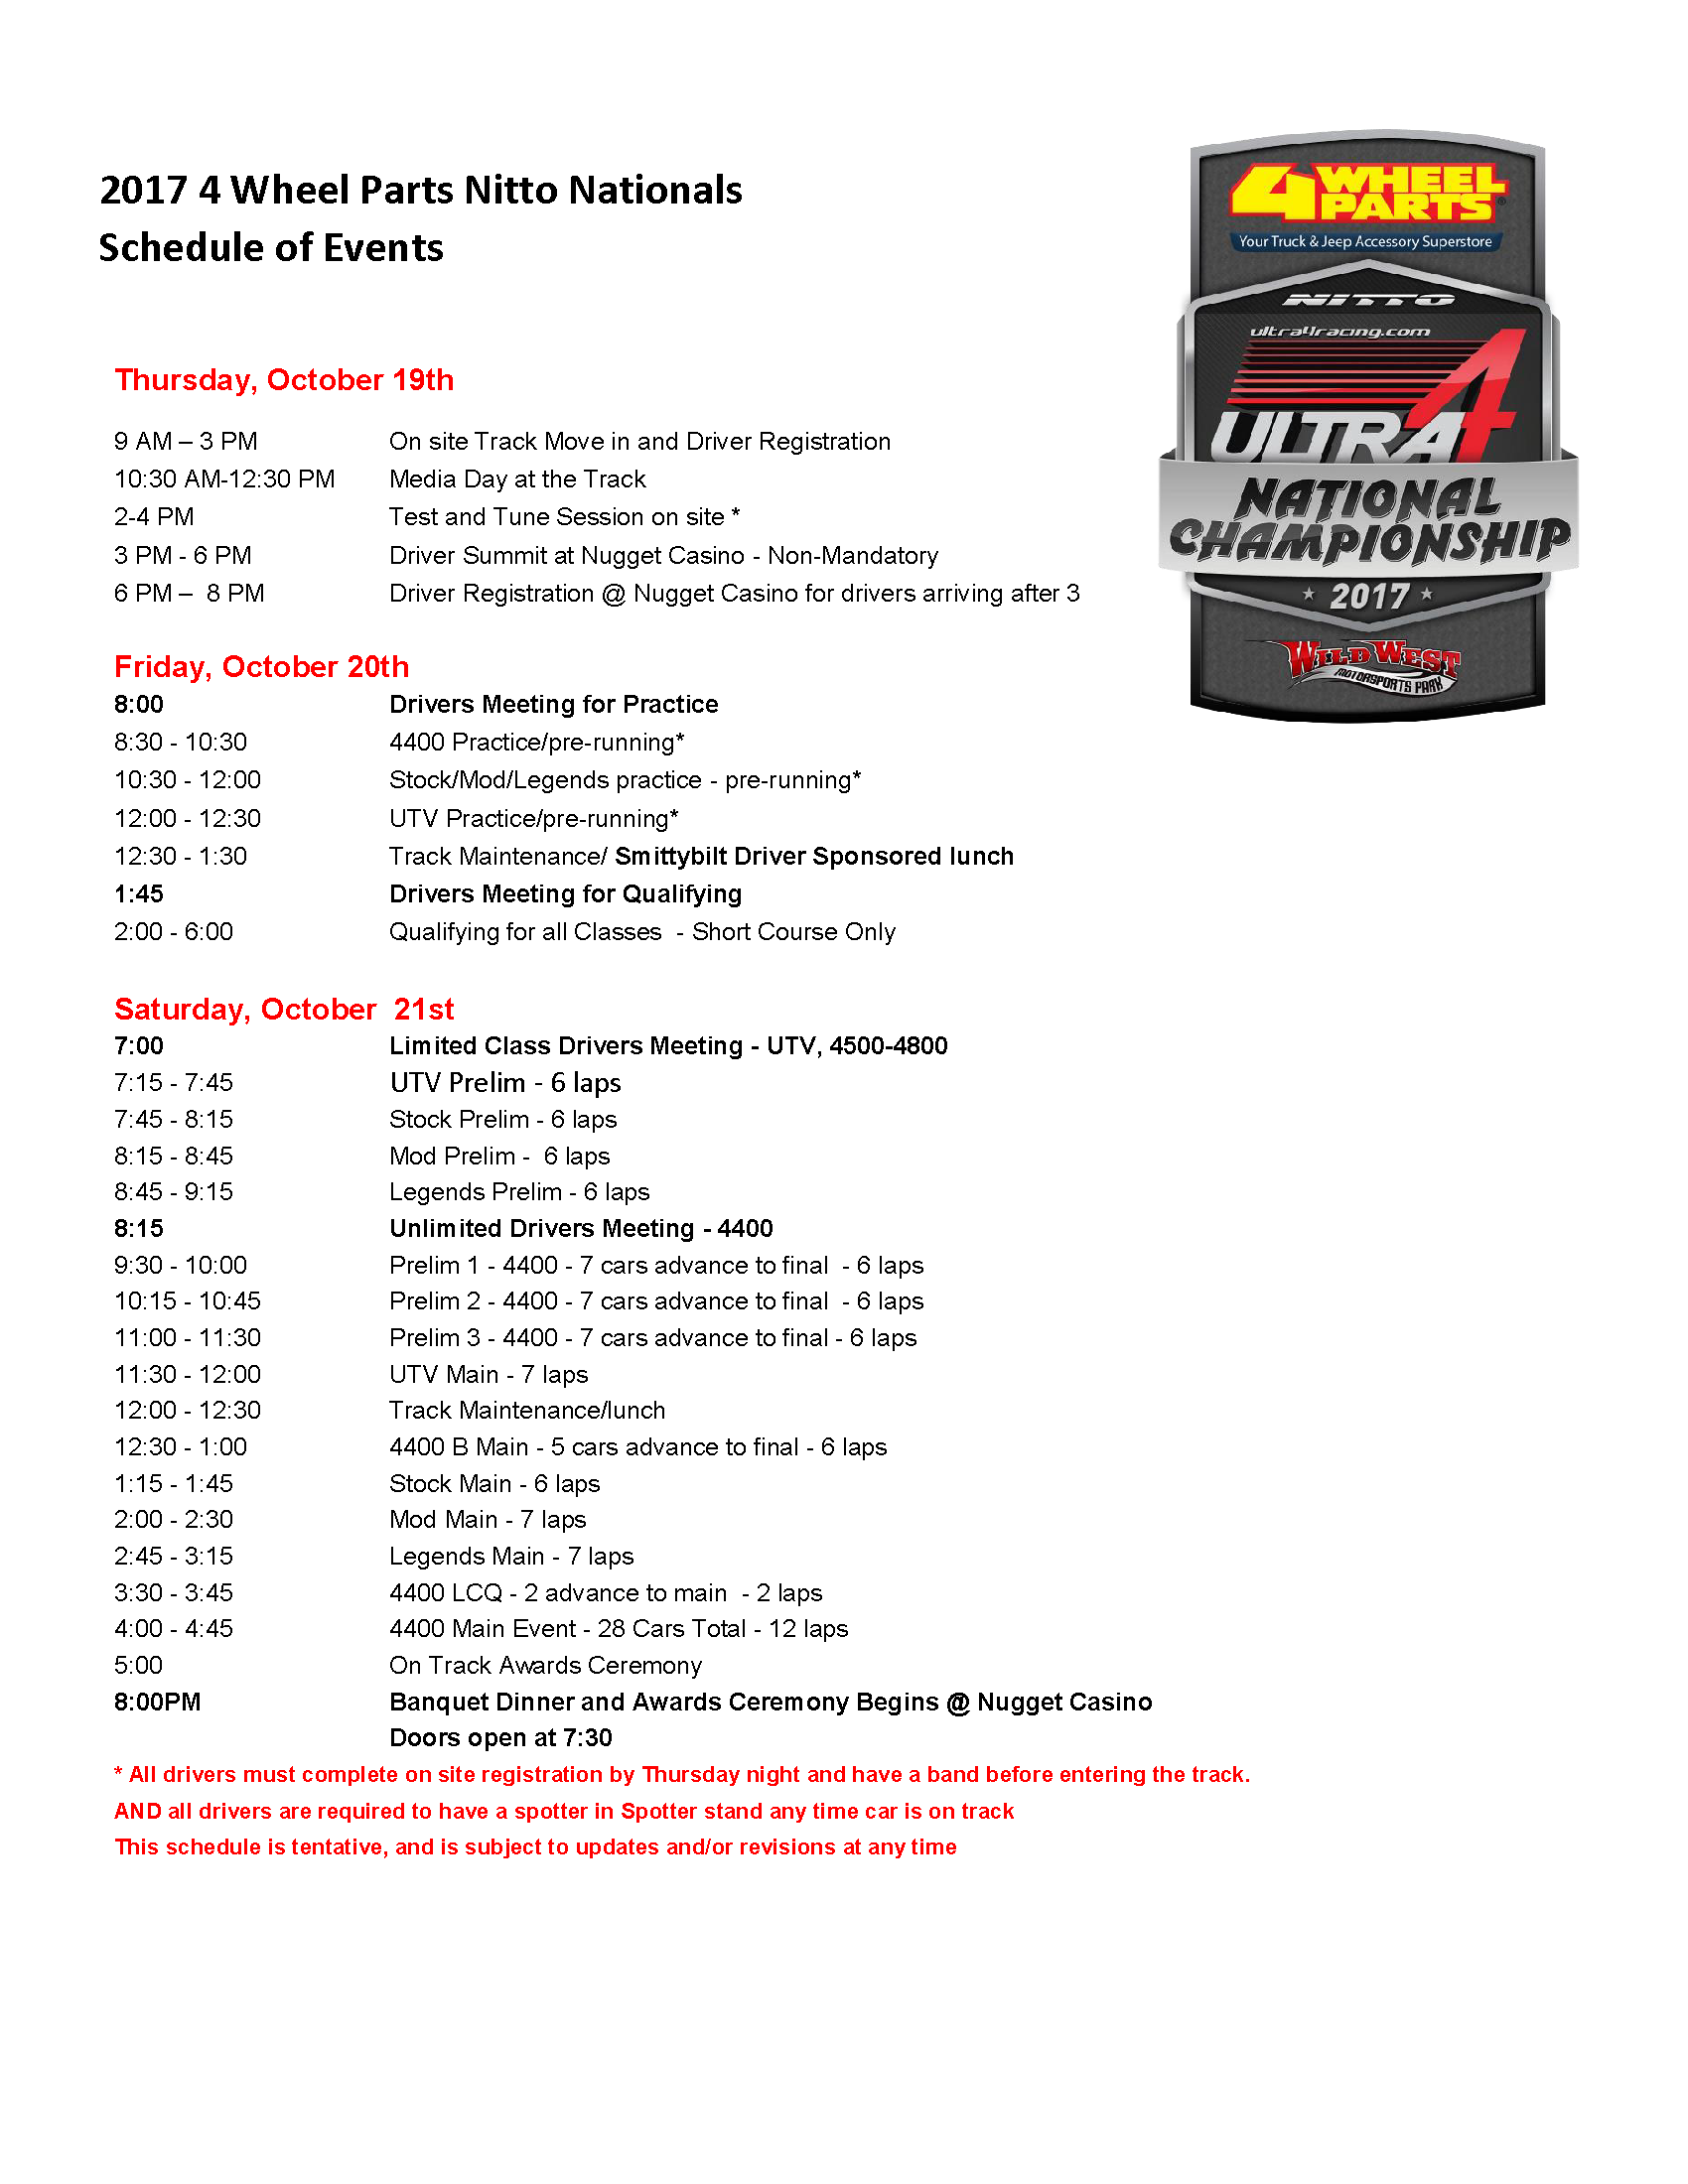 Nitto Tire Nationals schedule.